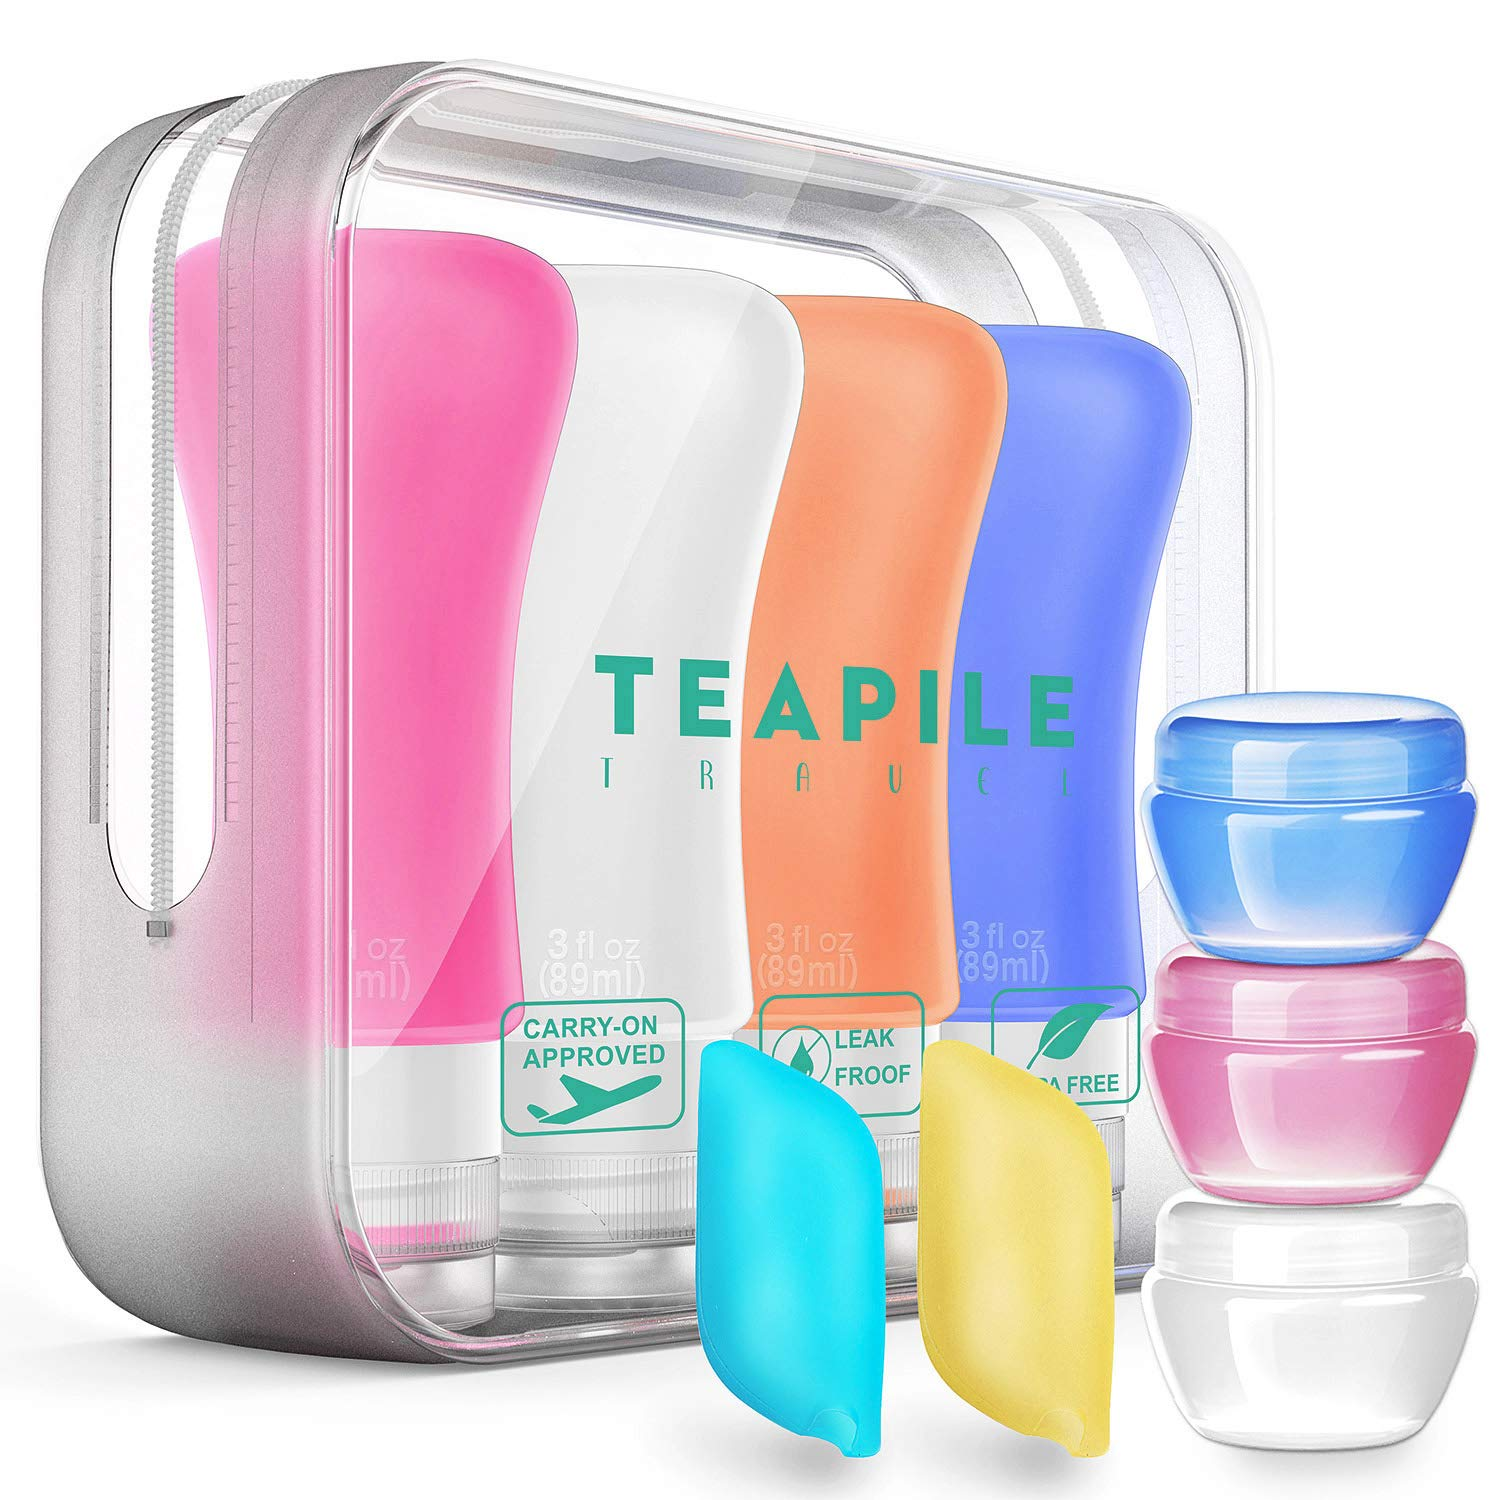 3. Teapile - 9 Pack TSA Approved Containers